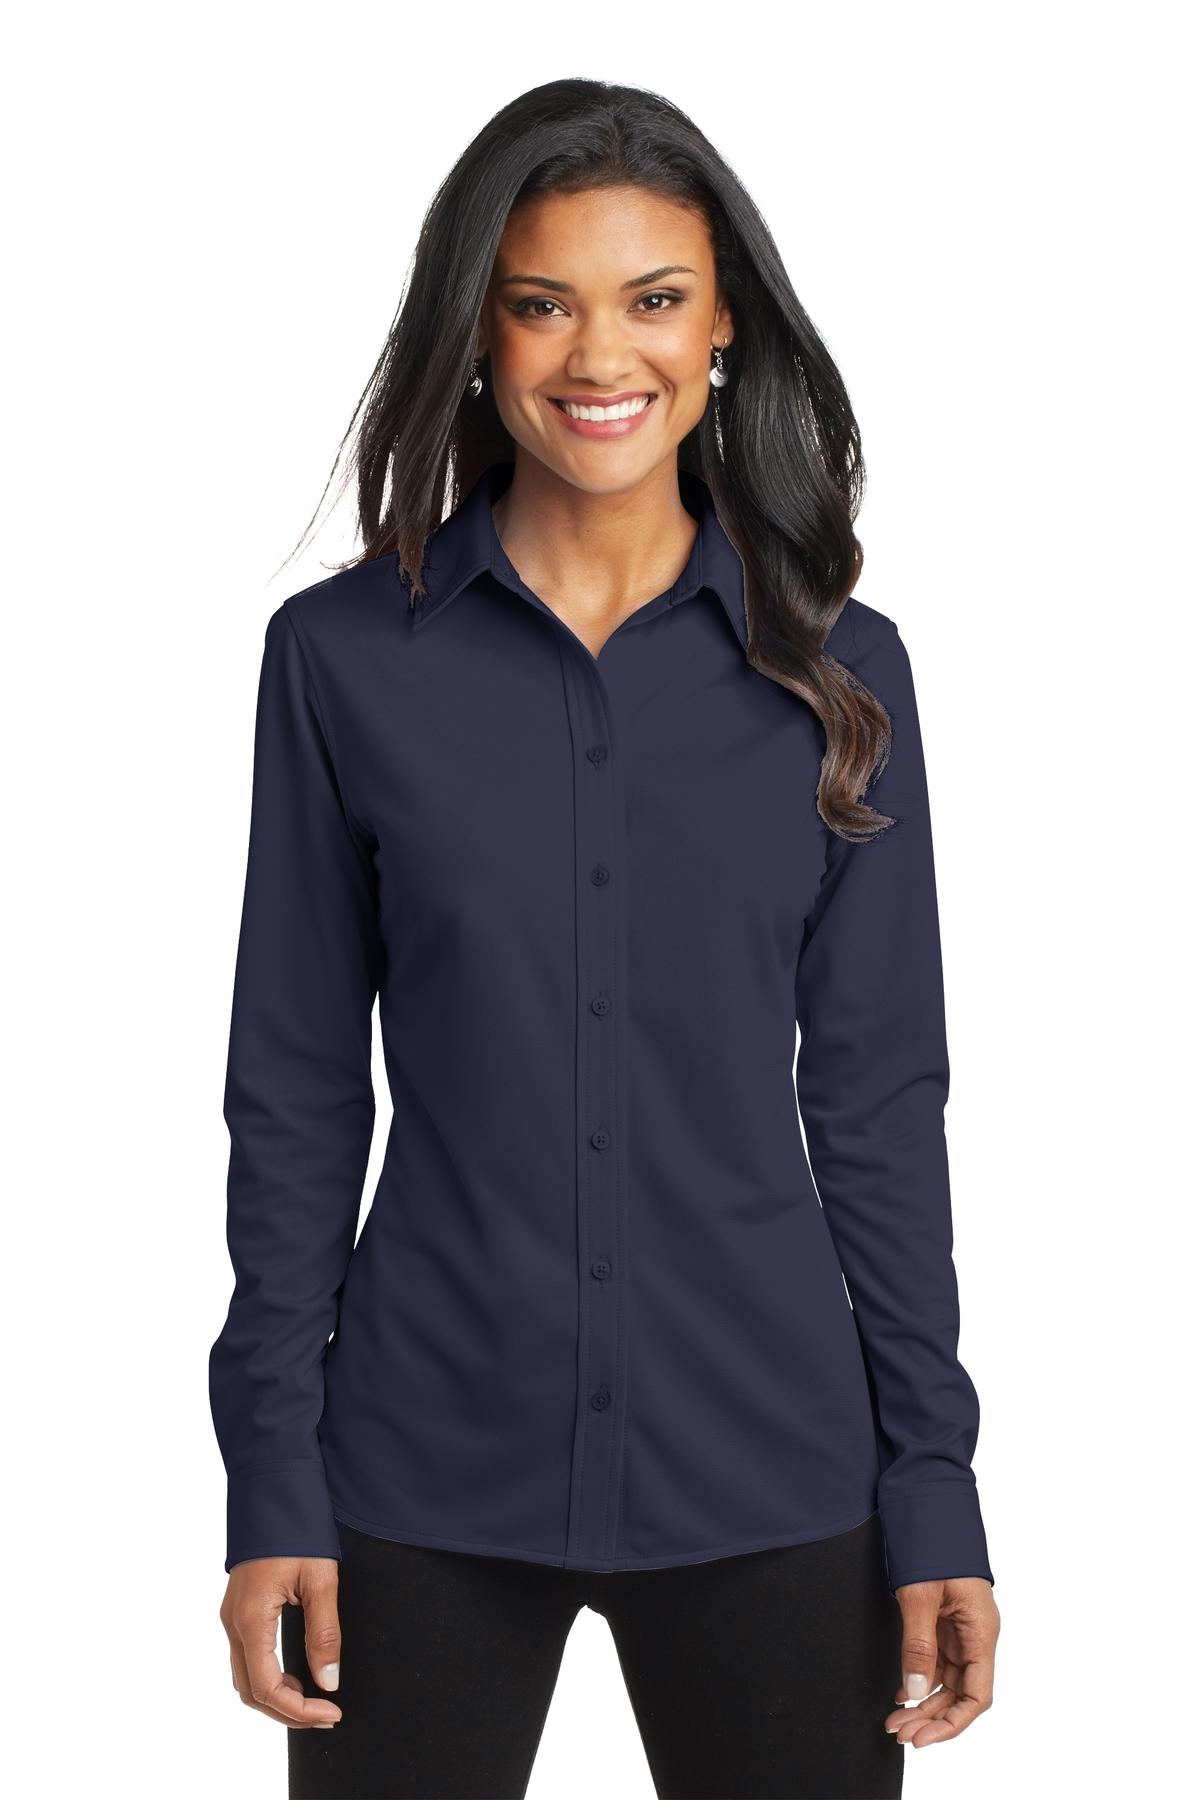 Port Authority ®  Ladies Dimension Knit Dress Shirt. L570 - Dark Navy